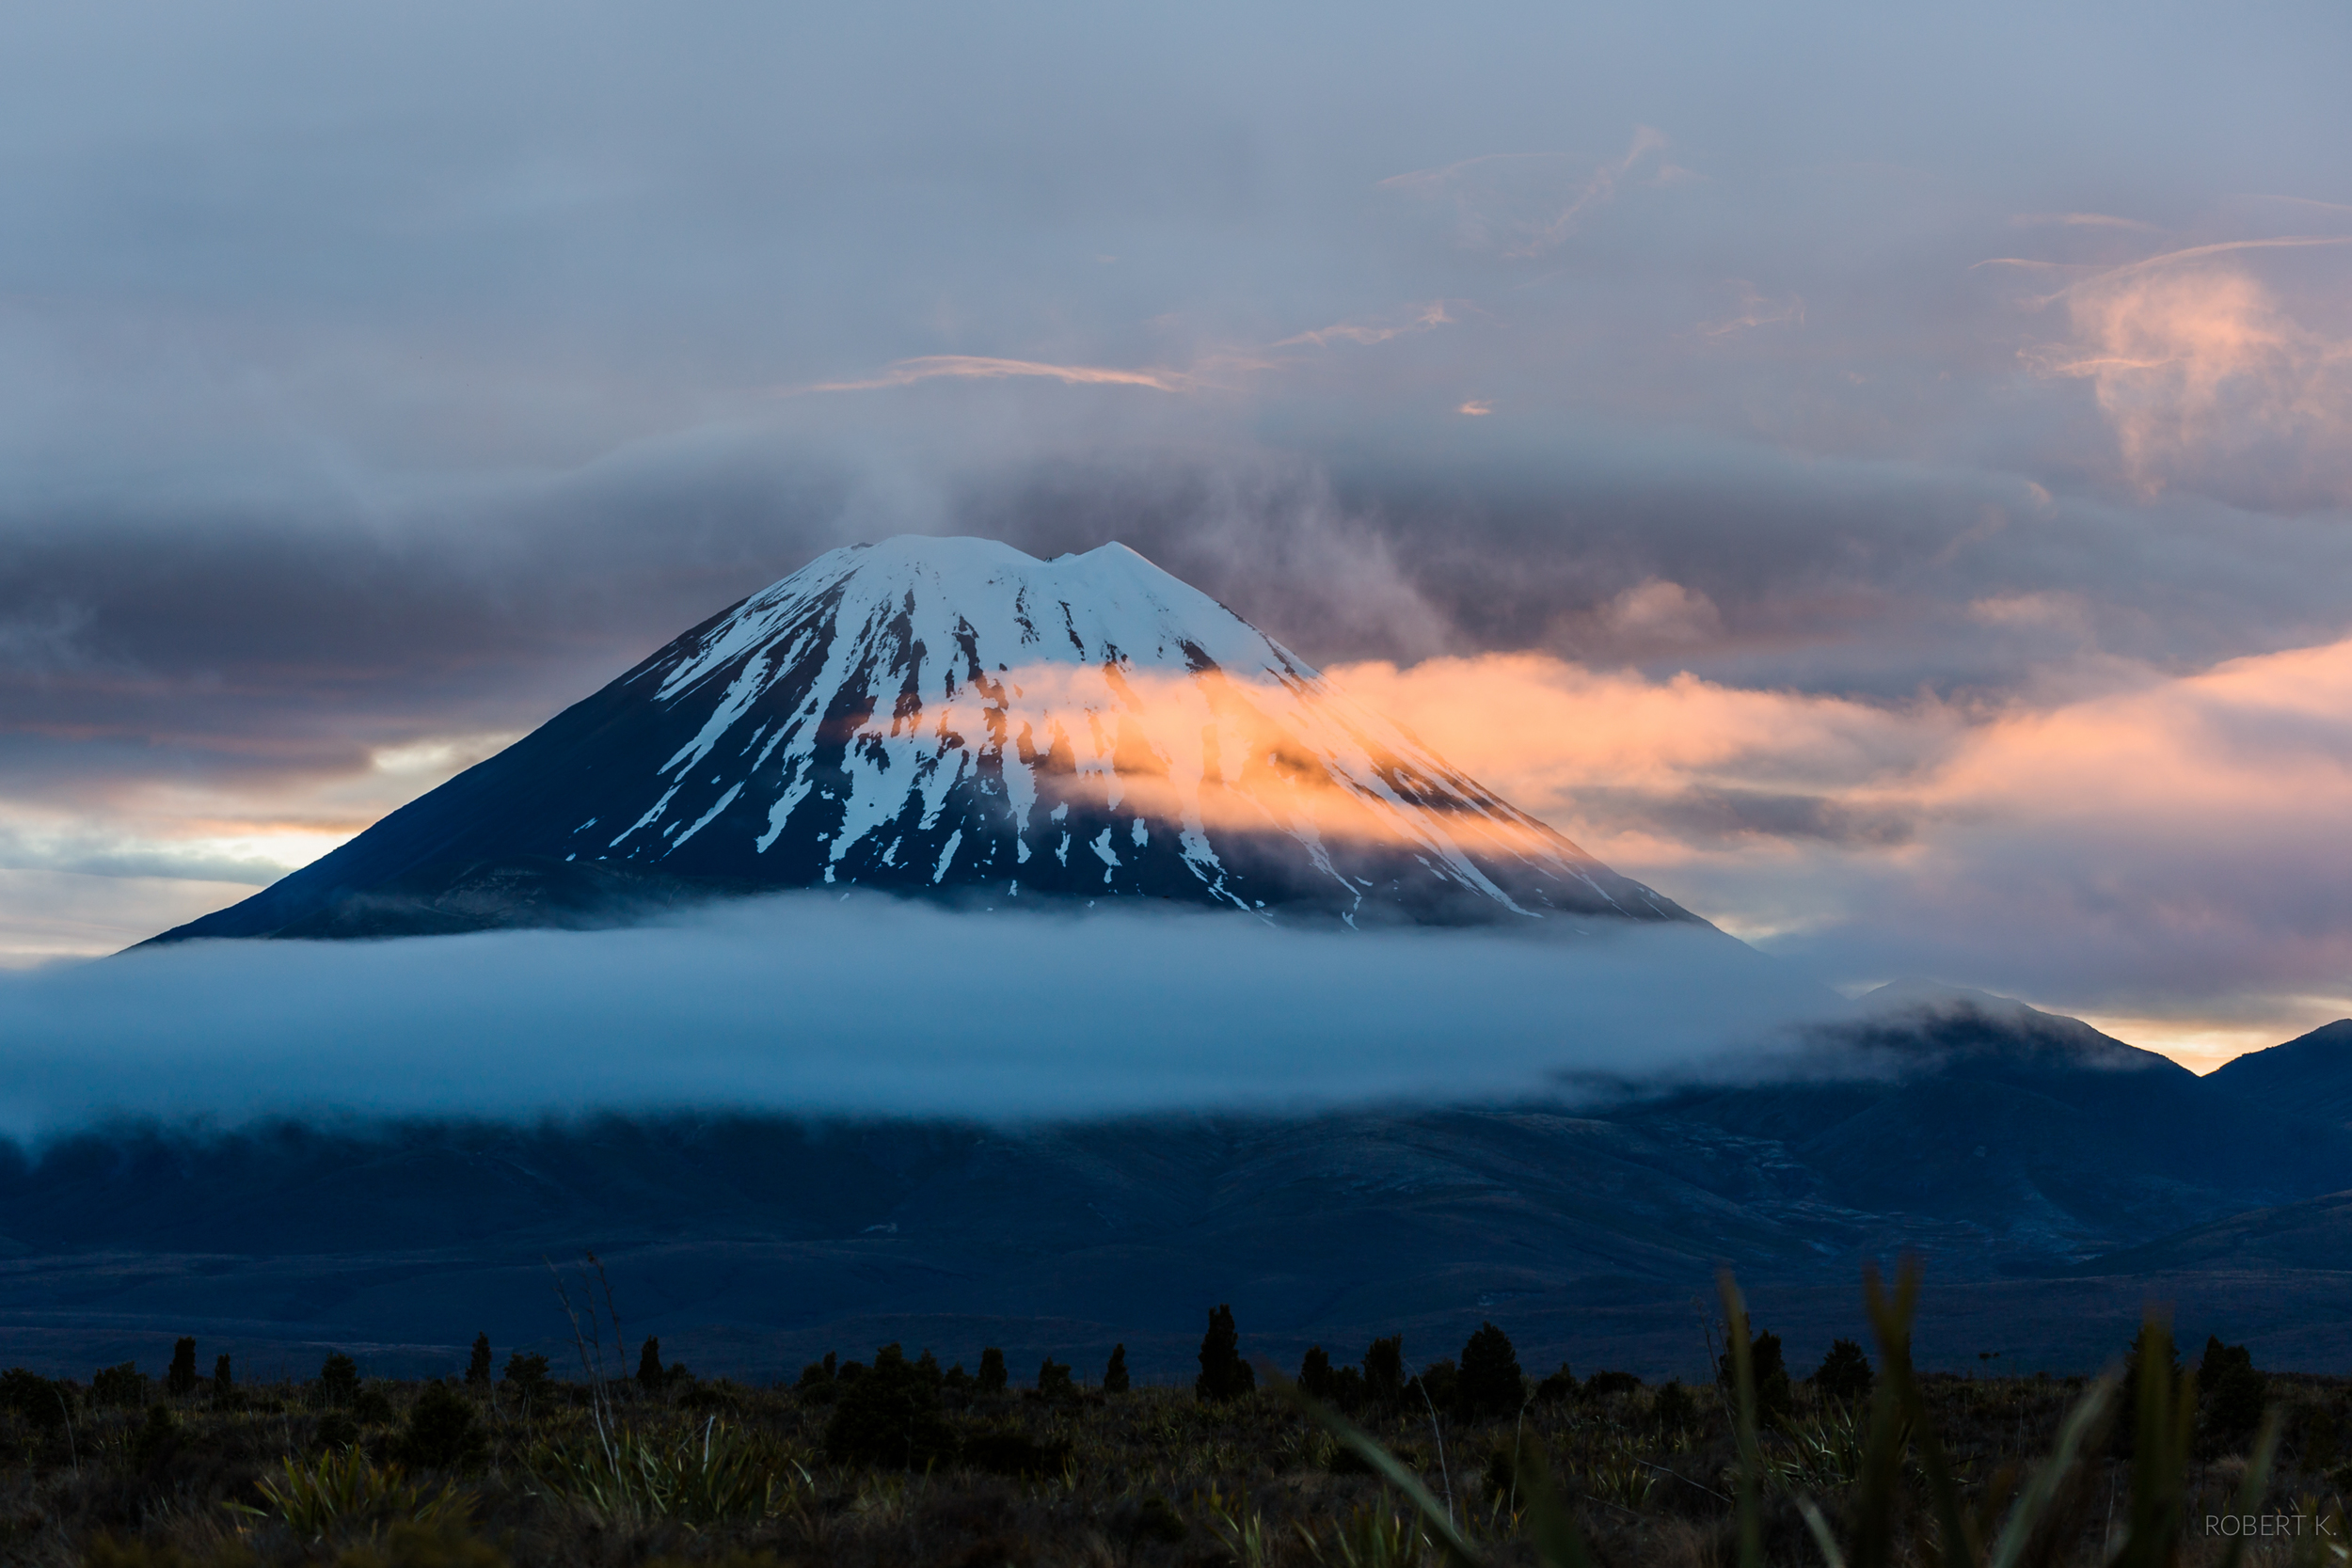 Mount Ngauruhoe, also known as Mount Doom